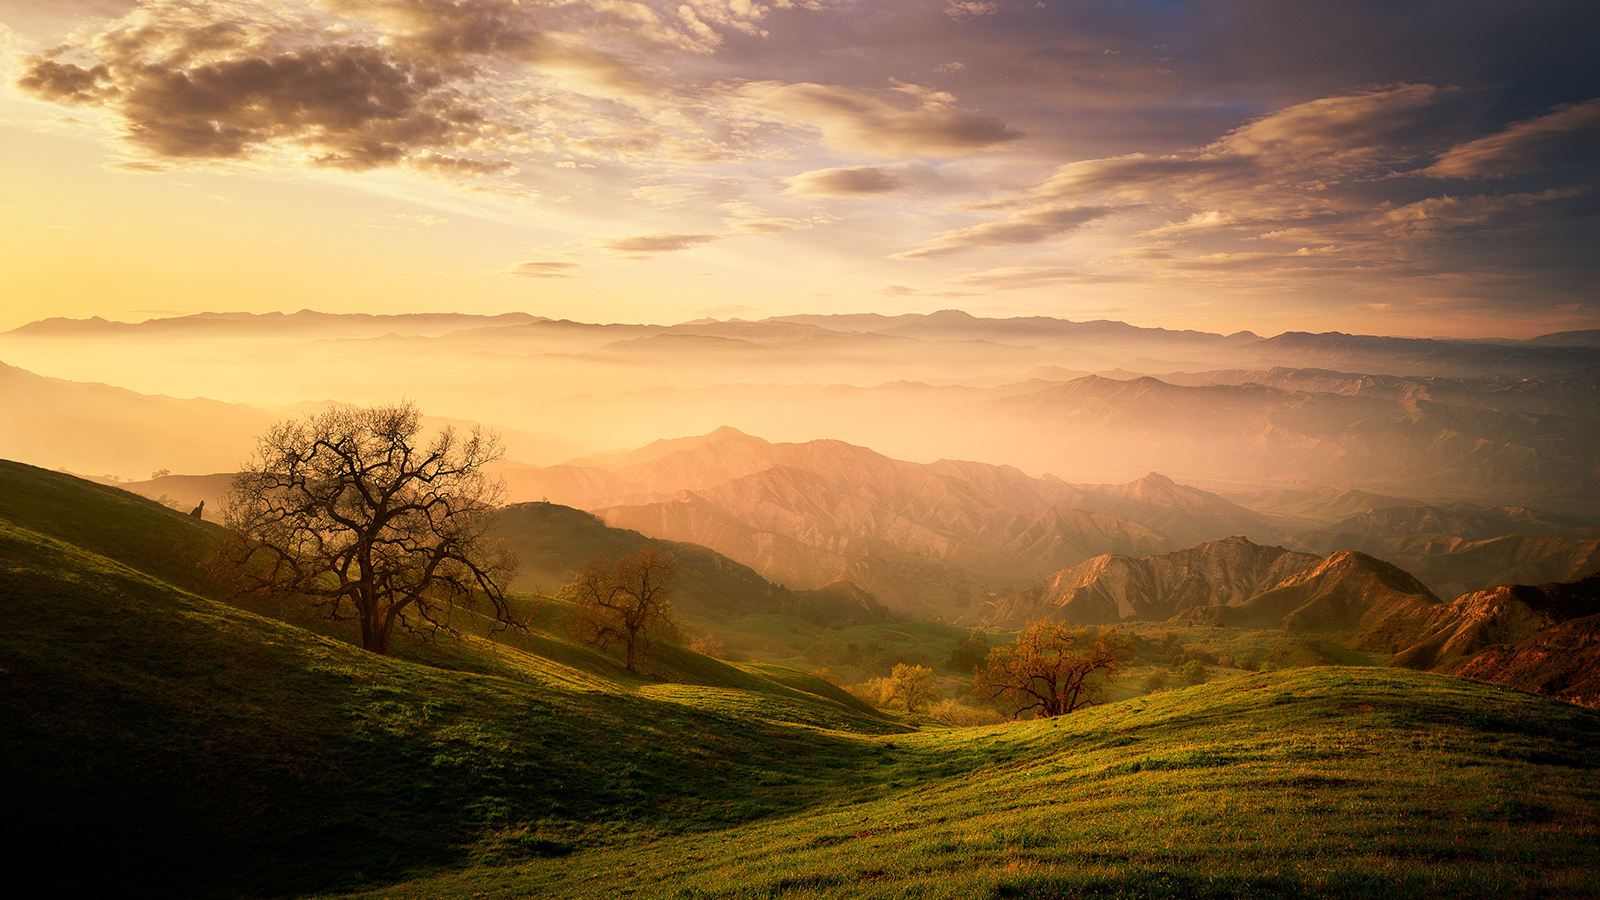 CreativeLive: Landscape Photography With Marc Muench